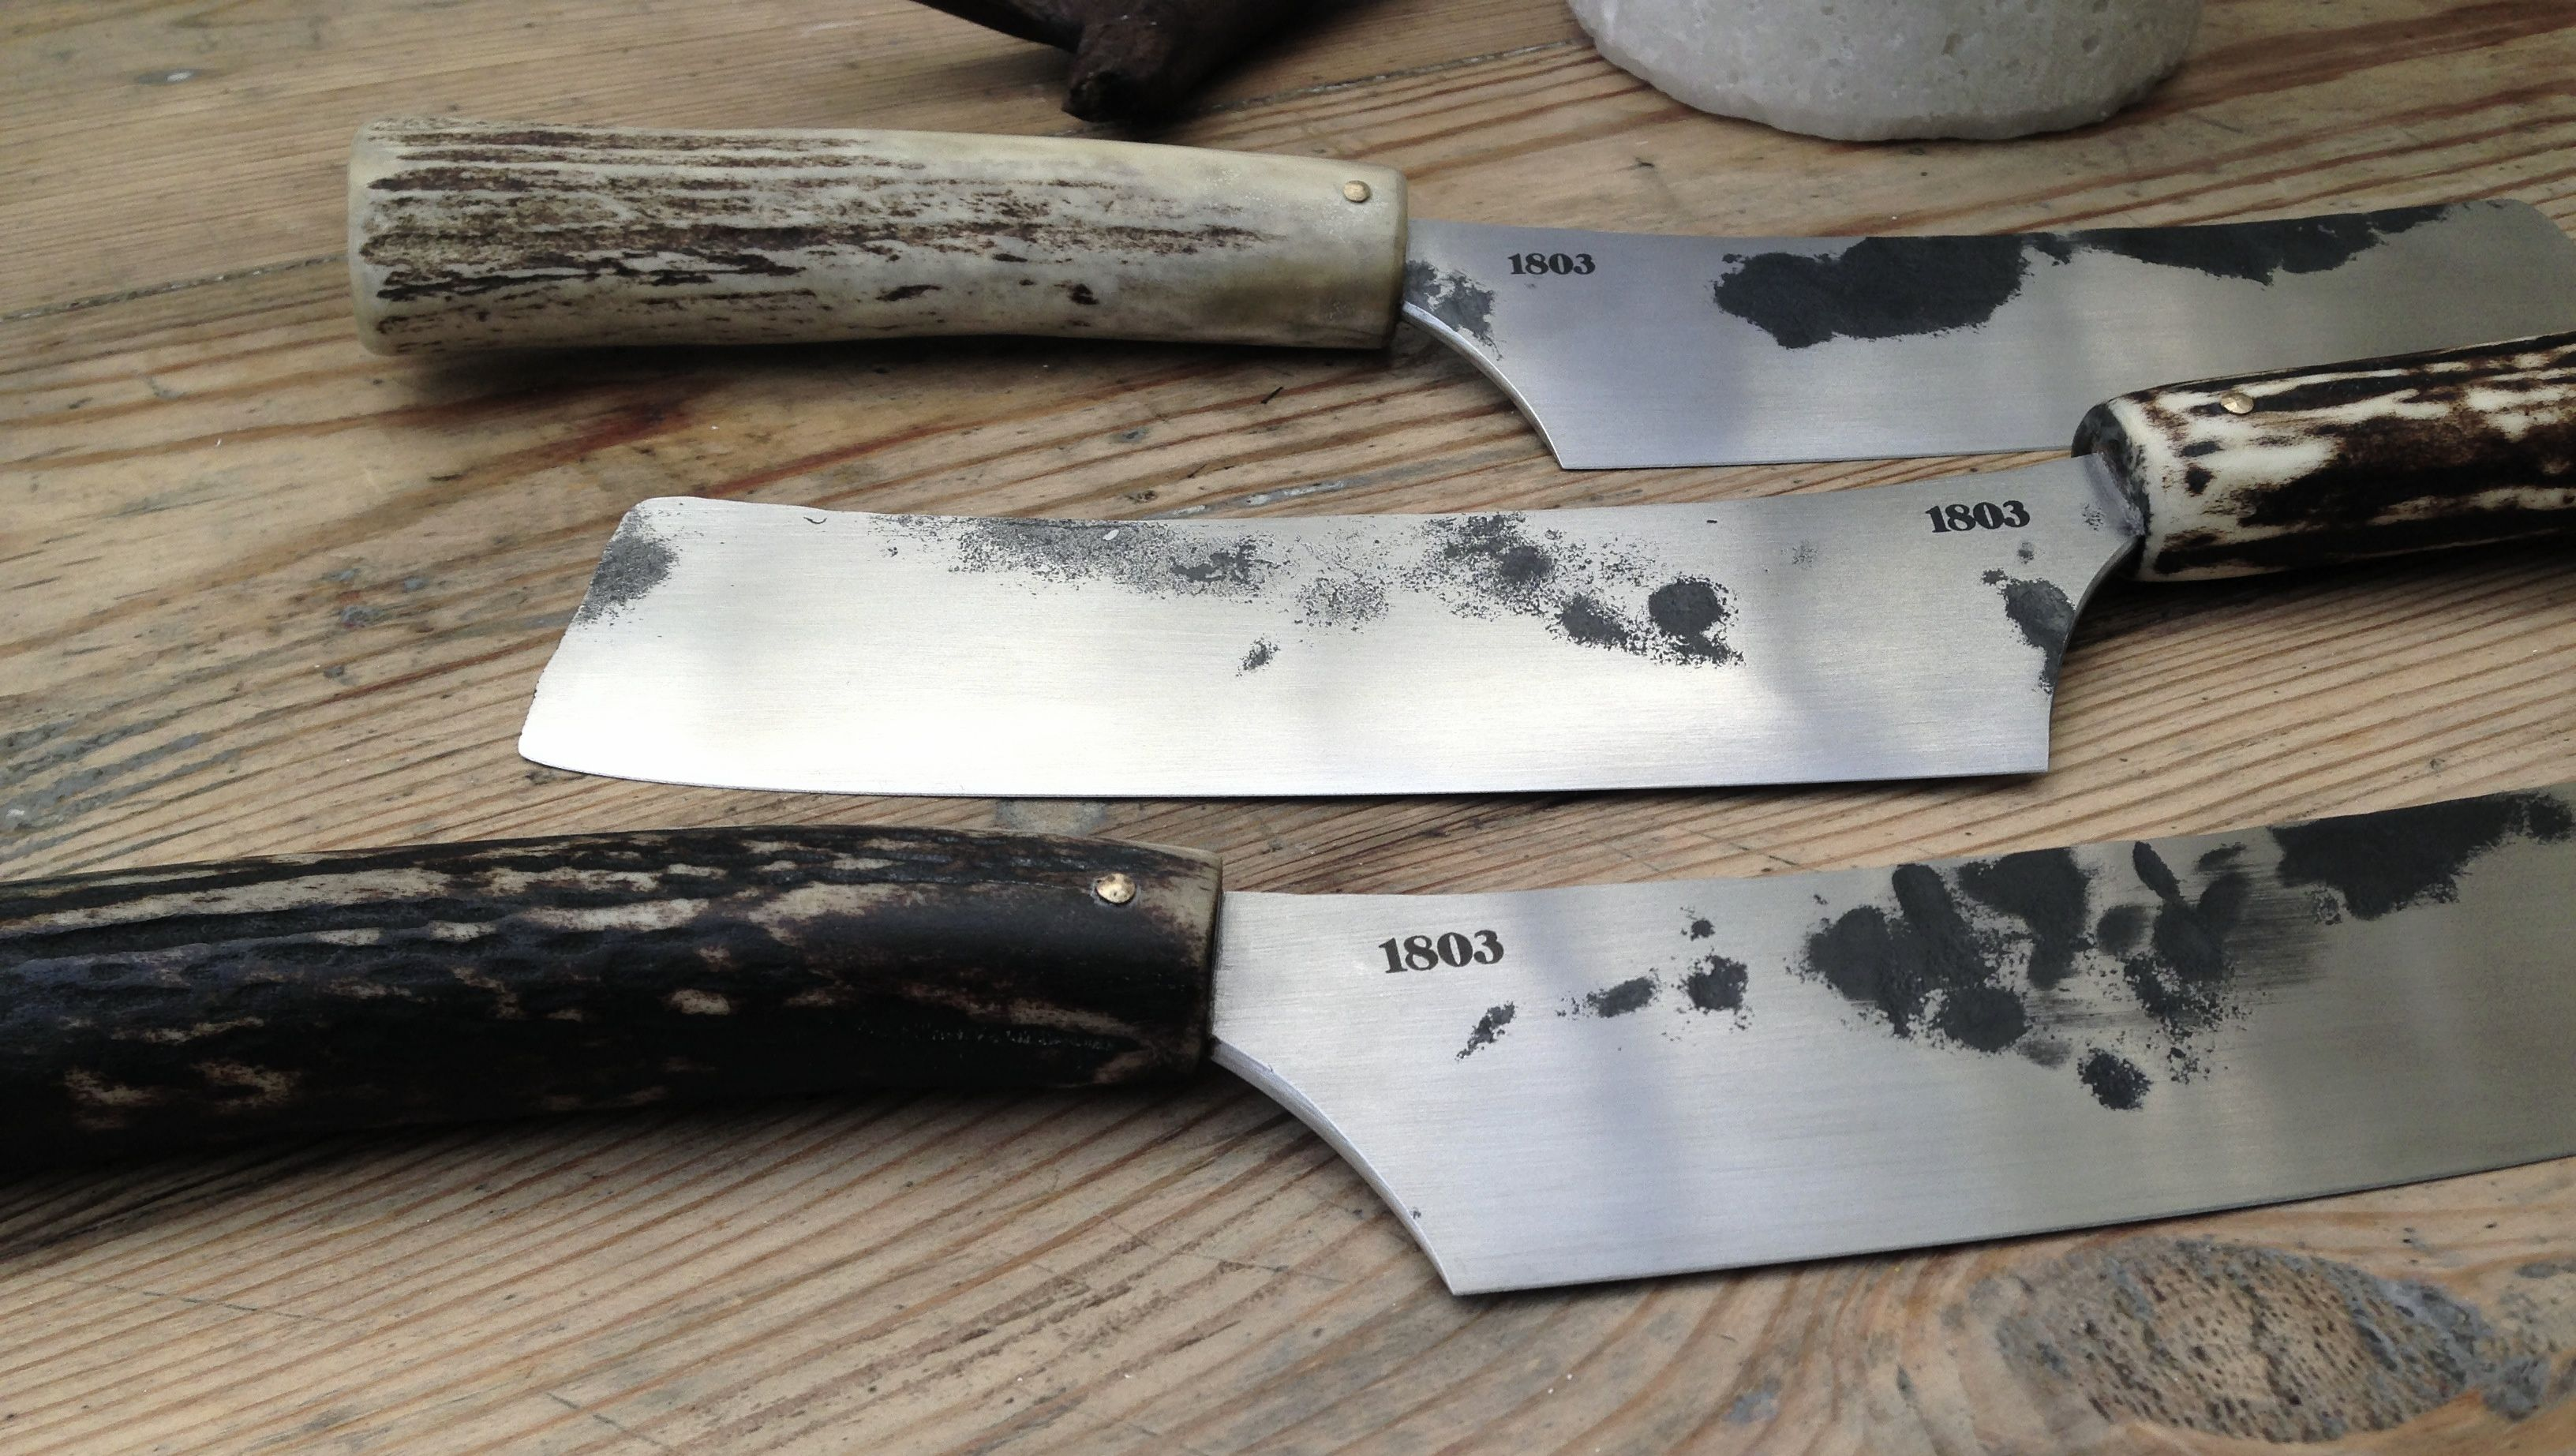 Hand Forged Stainless Steel Blade With Red Deer Antler Handle Designed And Made In Australia Antler Deer Knives Antler Knife Knife Forged Stainless Steel